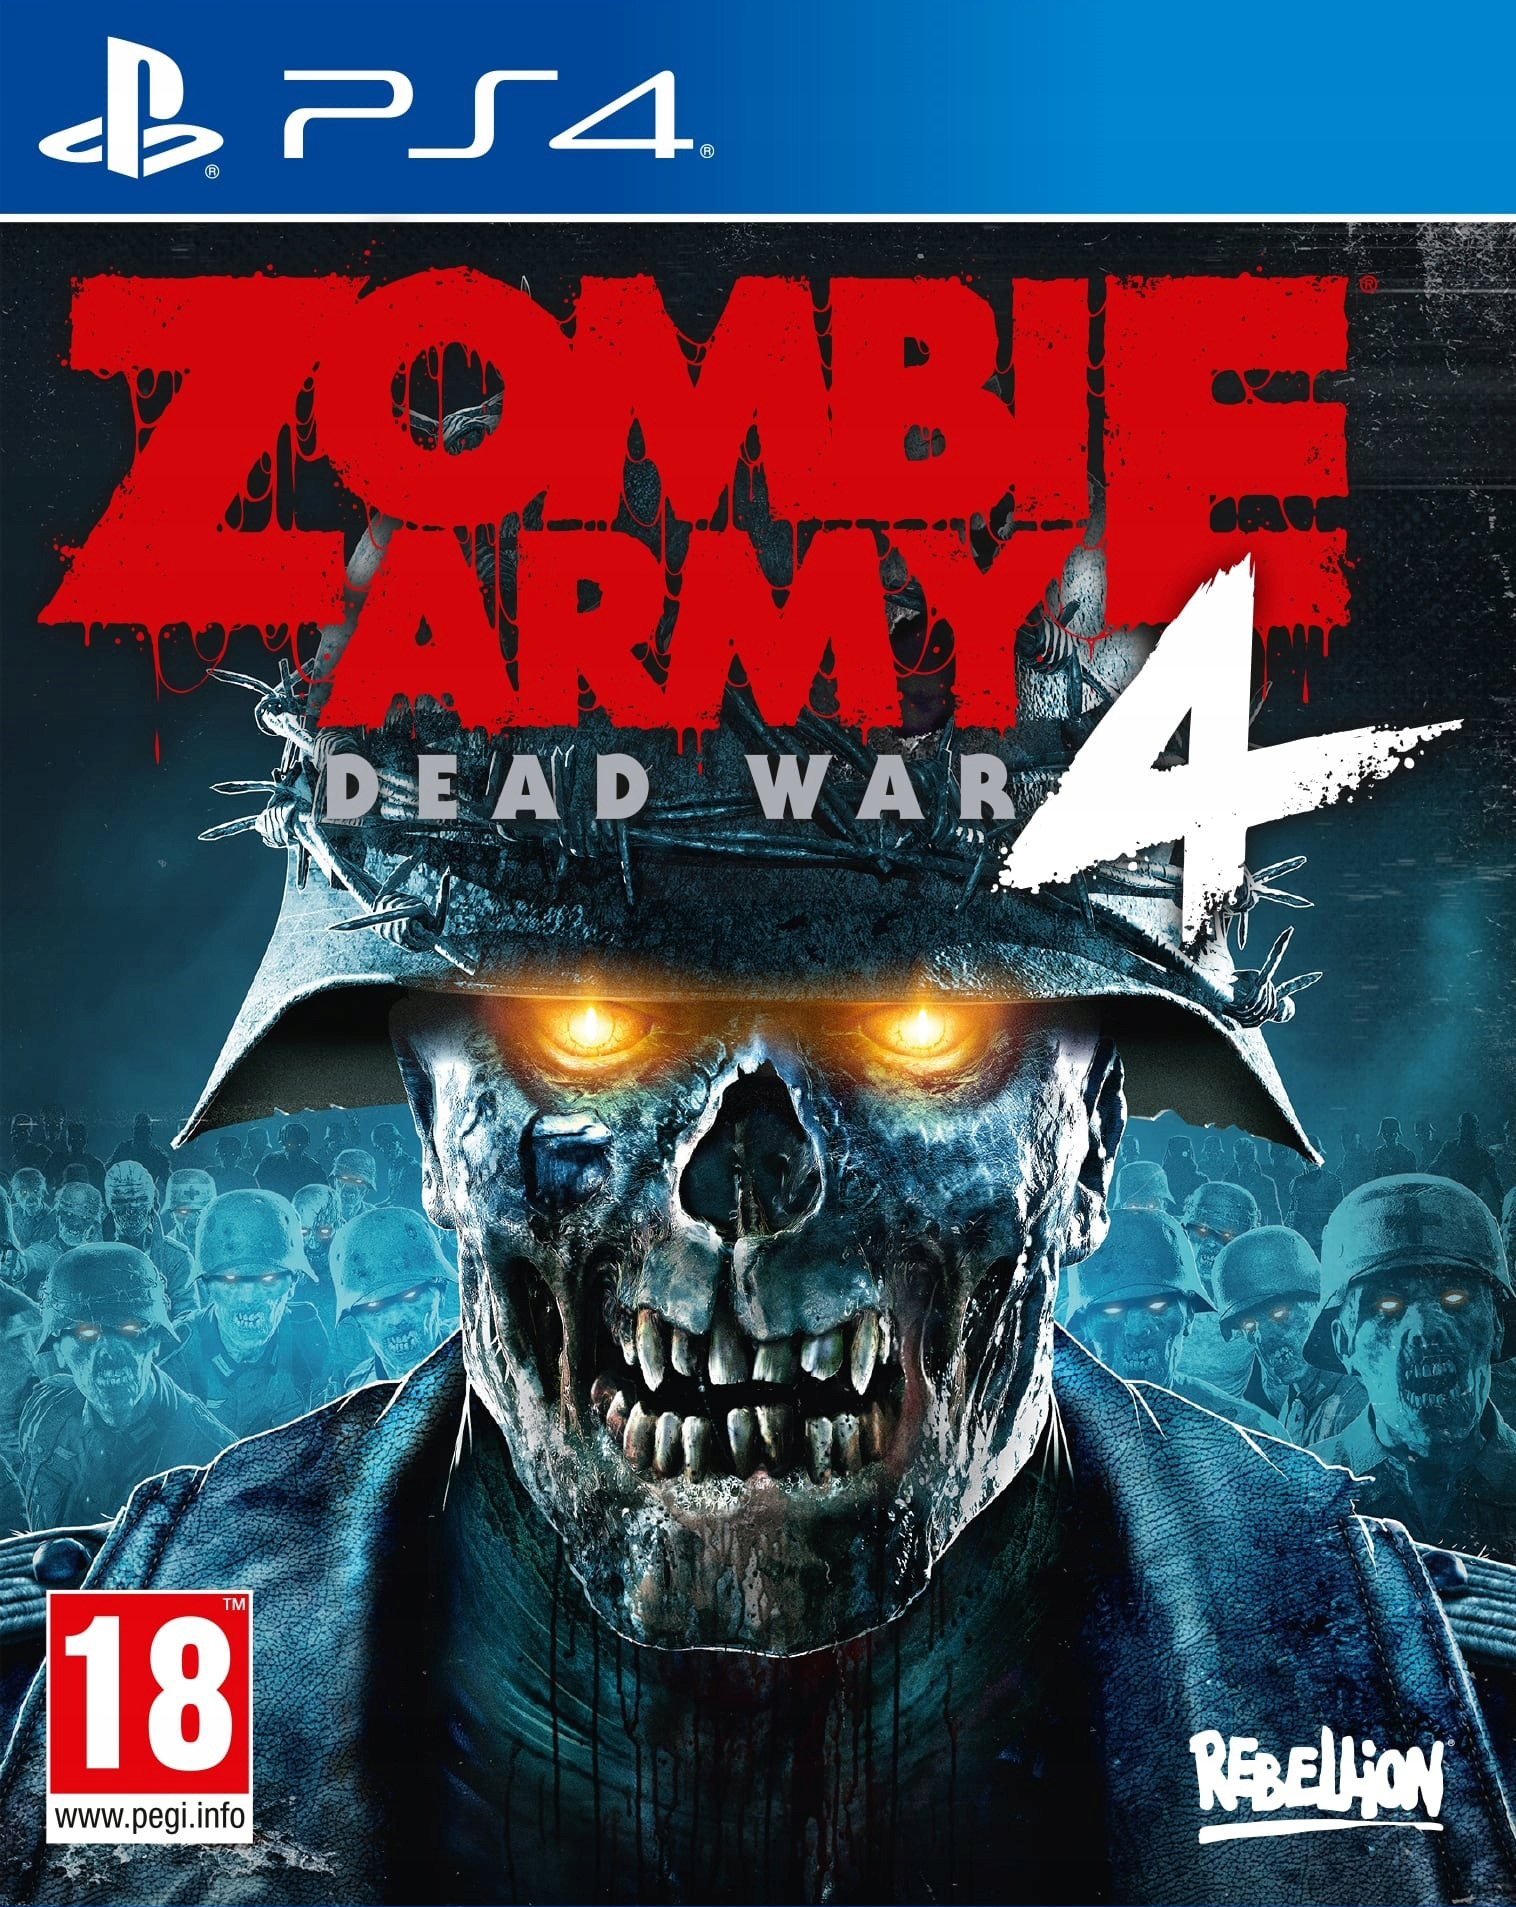 Zombie Army 4: Dead War [PS4] 5.05 / 6.72 / 7.02 [EUR] (2020) [Русский] (v1.07)